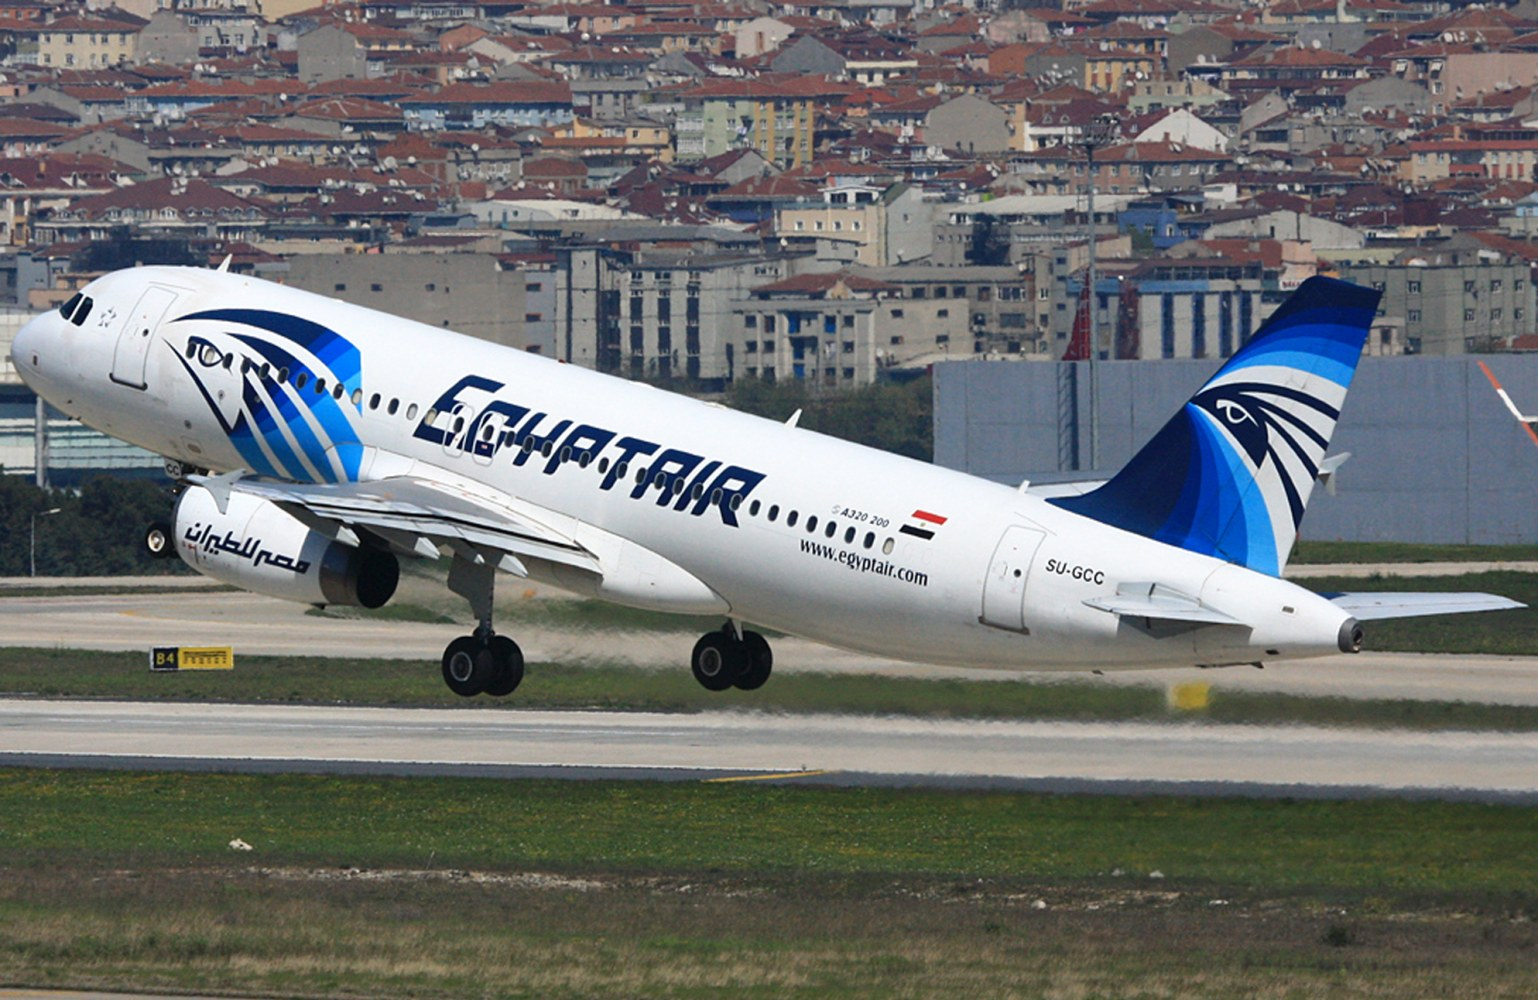 Crashed EgyptAir Jet's Flight Data Recorders Repaired: Officials - NBC ...: www.nbcnews.com/storyline/egyptair-crash/crashed-egyptair-jet-s...